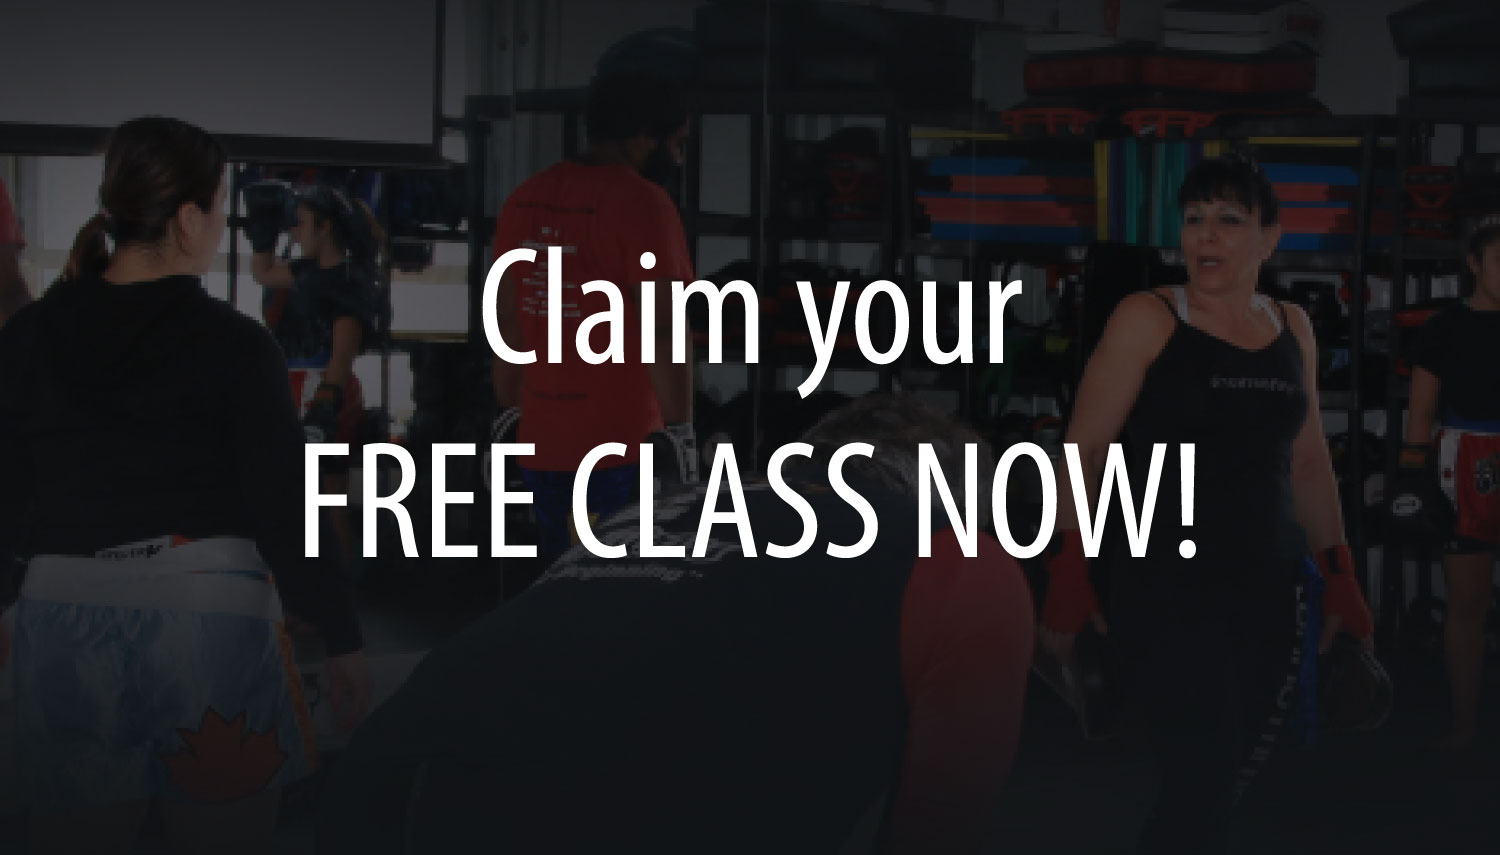 claim-your-free-class-now-circuittraining